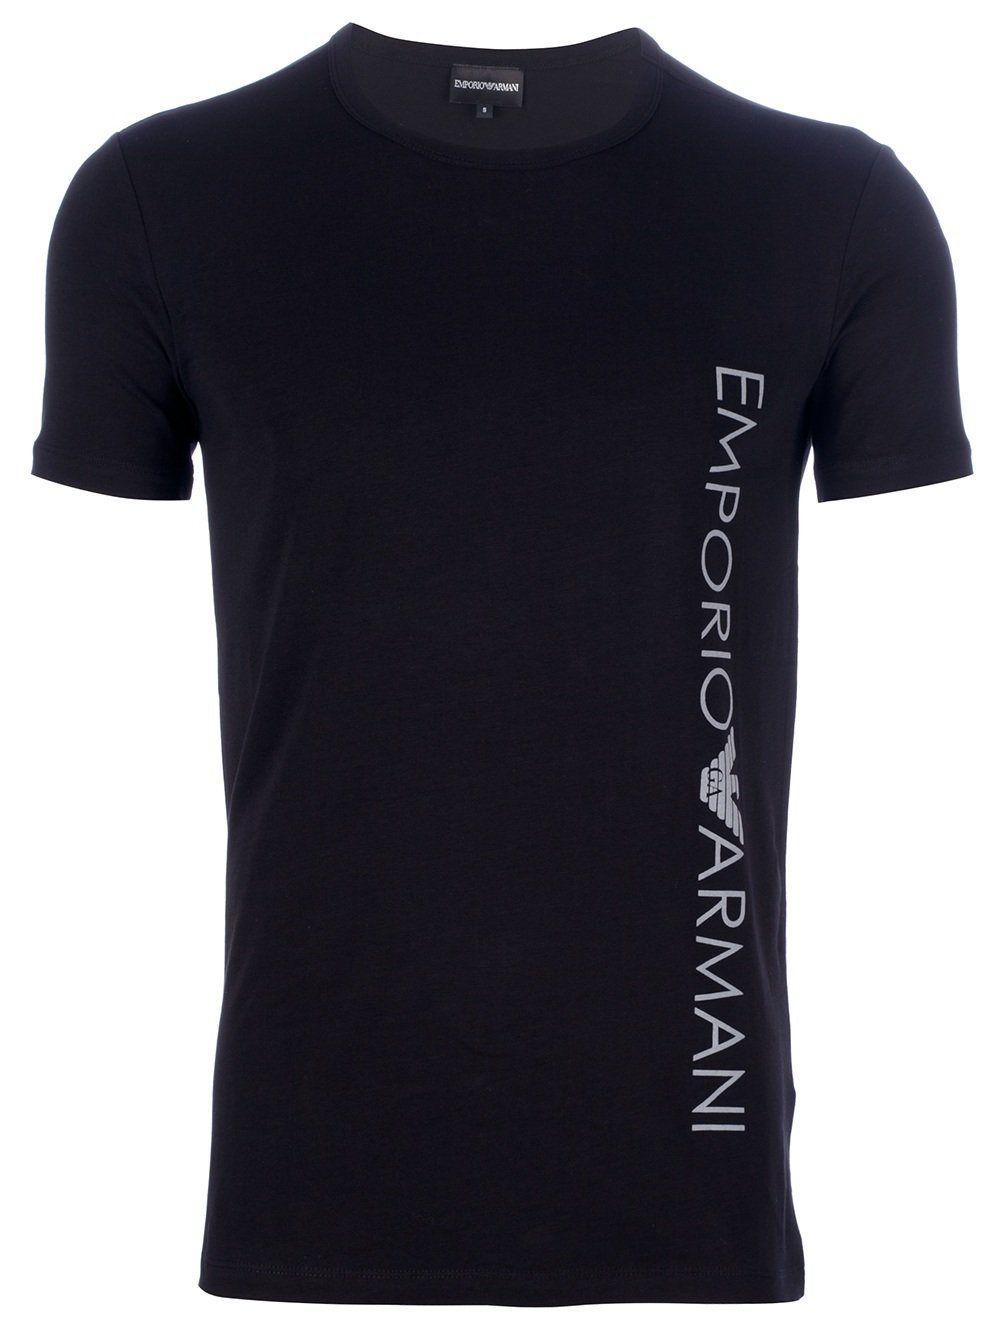 Lyst Emporio Armani Logo T Shirt In Black For Men